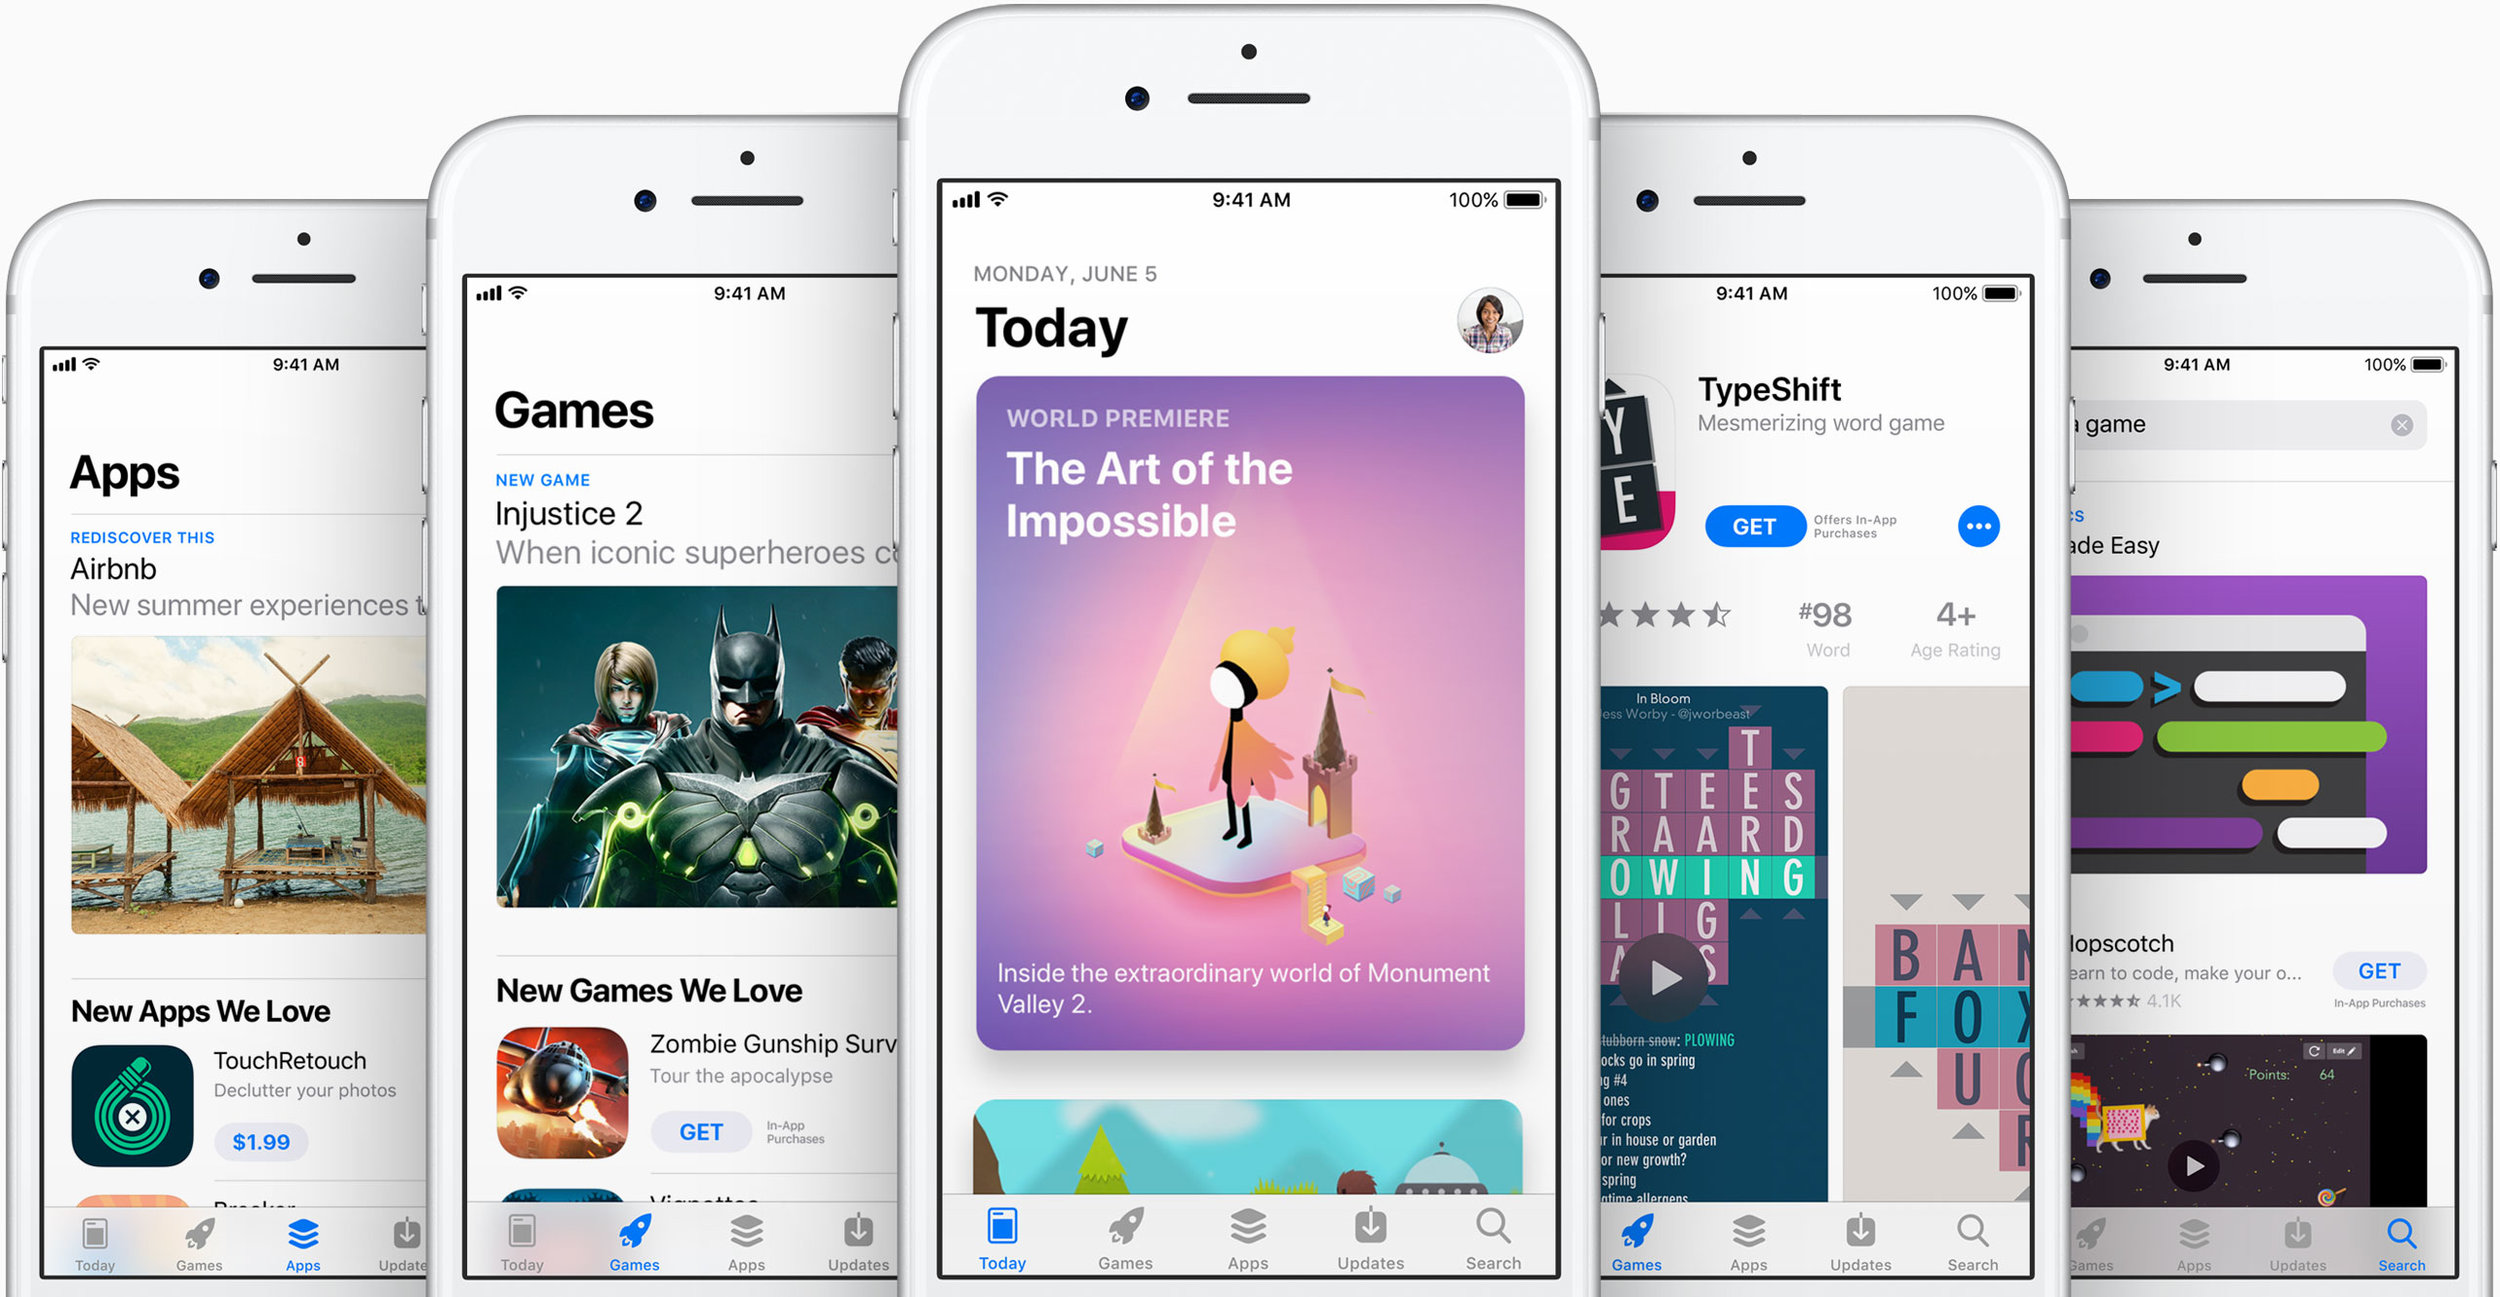 The App Store has gotten the Apple Music treatment in iOS 11.